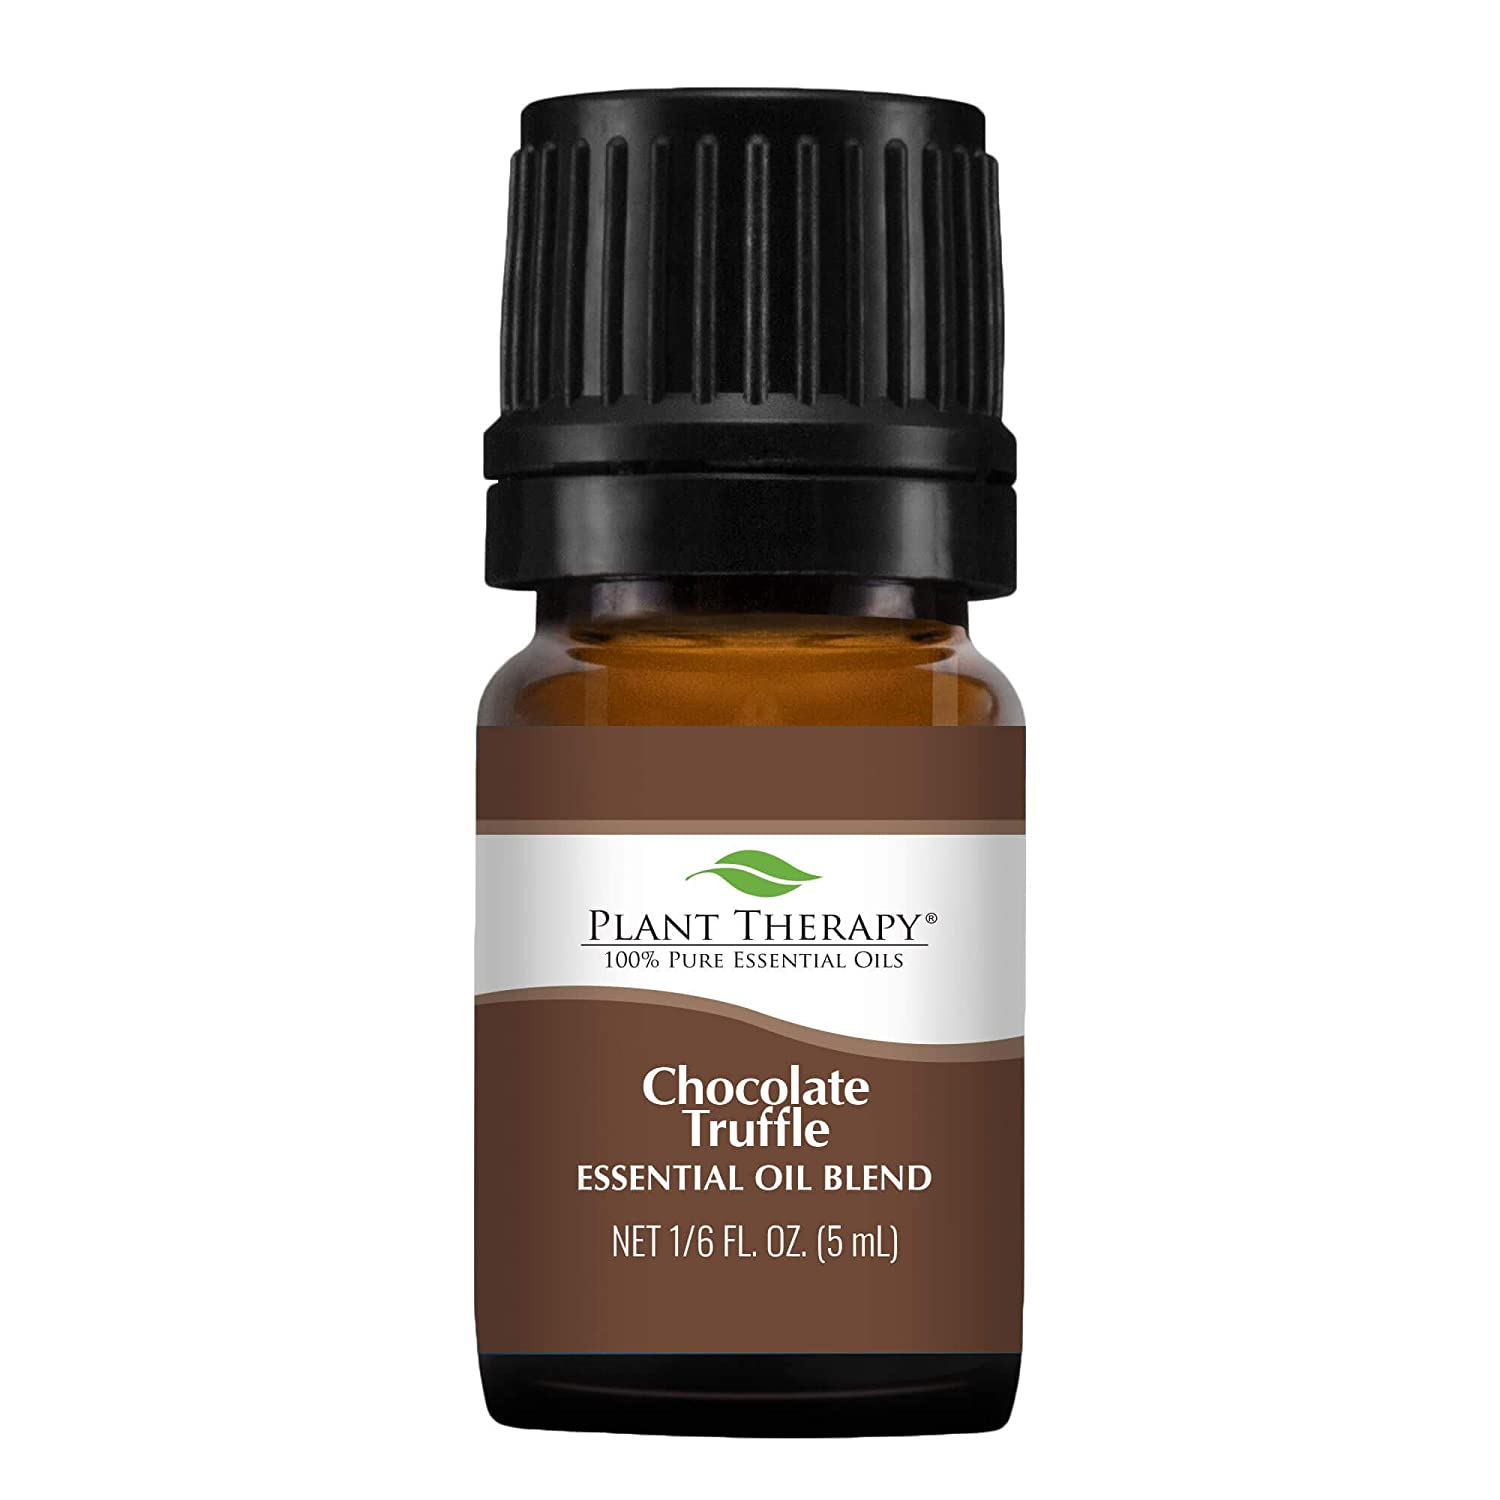 Plant Therapy Chocolate Truffle Essential Oil Blend 5 mL (1/6 oz) 100% Pure, Undiluted, Therapeutic Grade